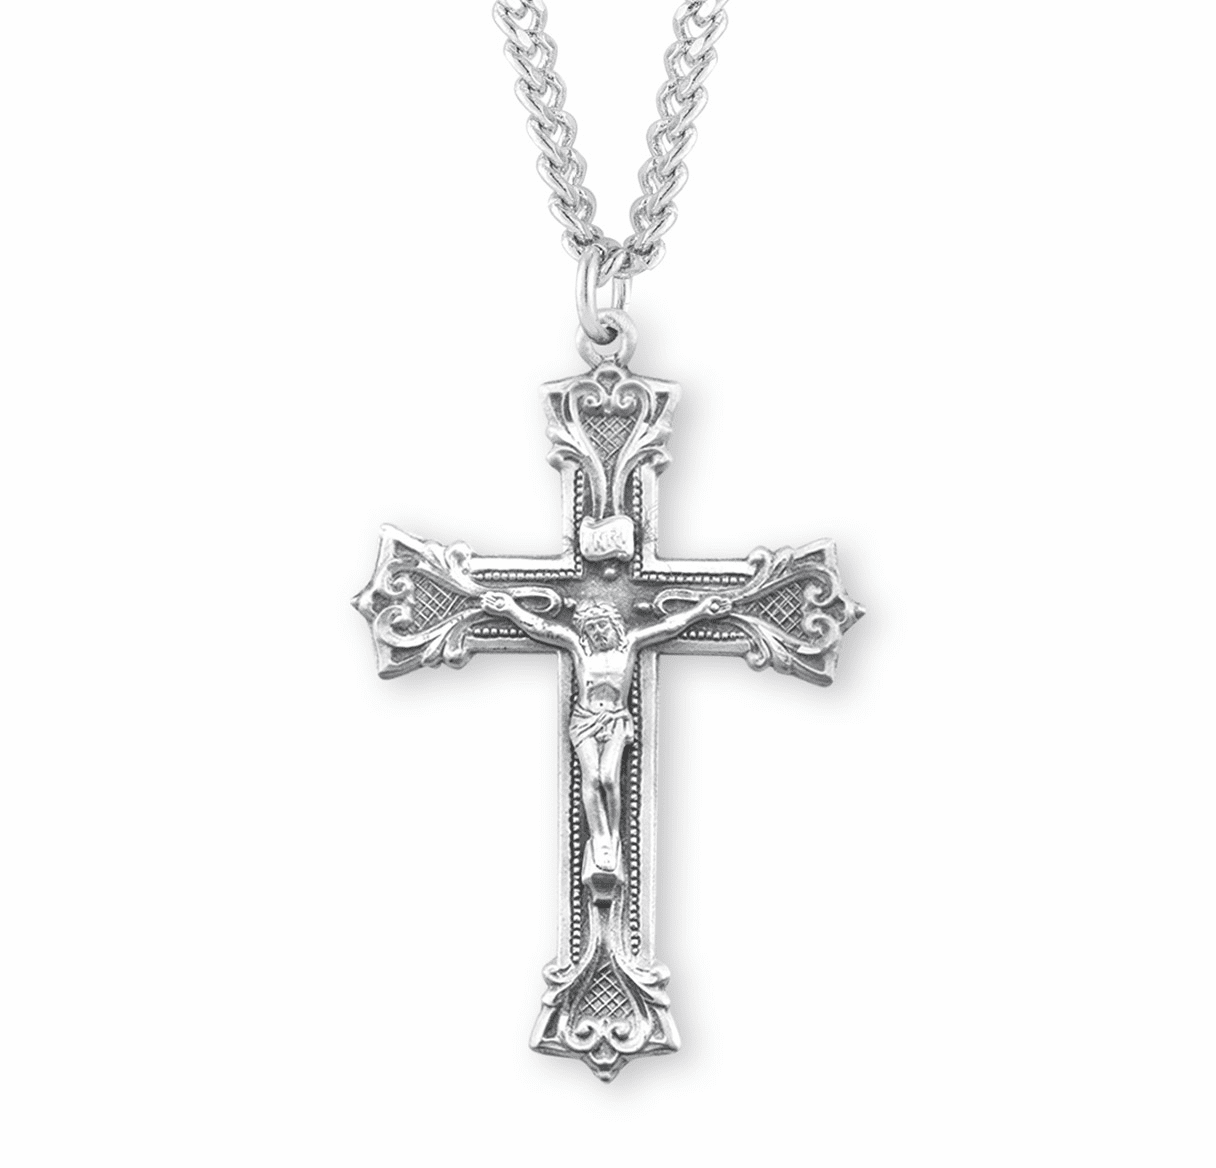 HMH Religious Gothic Scroll Style Sterling Silver Crucifix Pendant Necklace